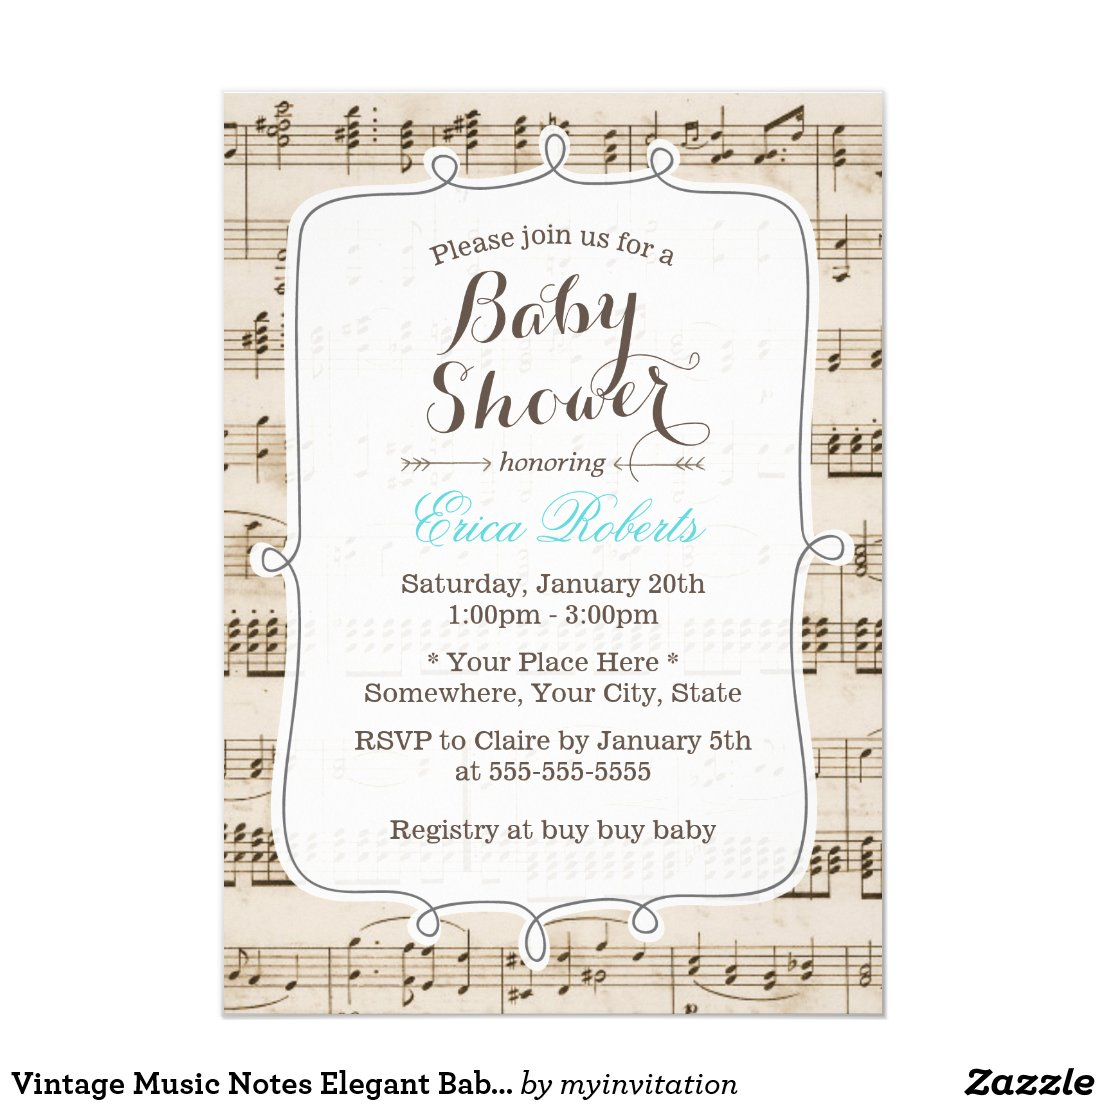 Vintage Music Notes Elegant Baby Shower Card